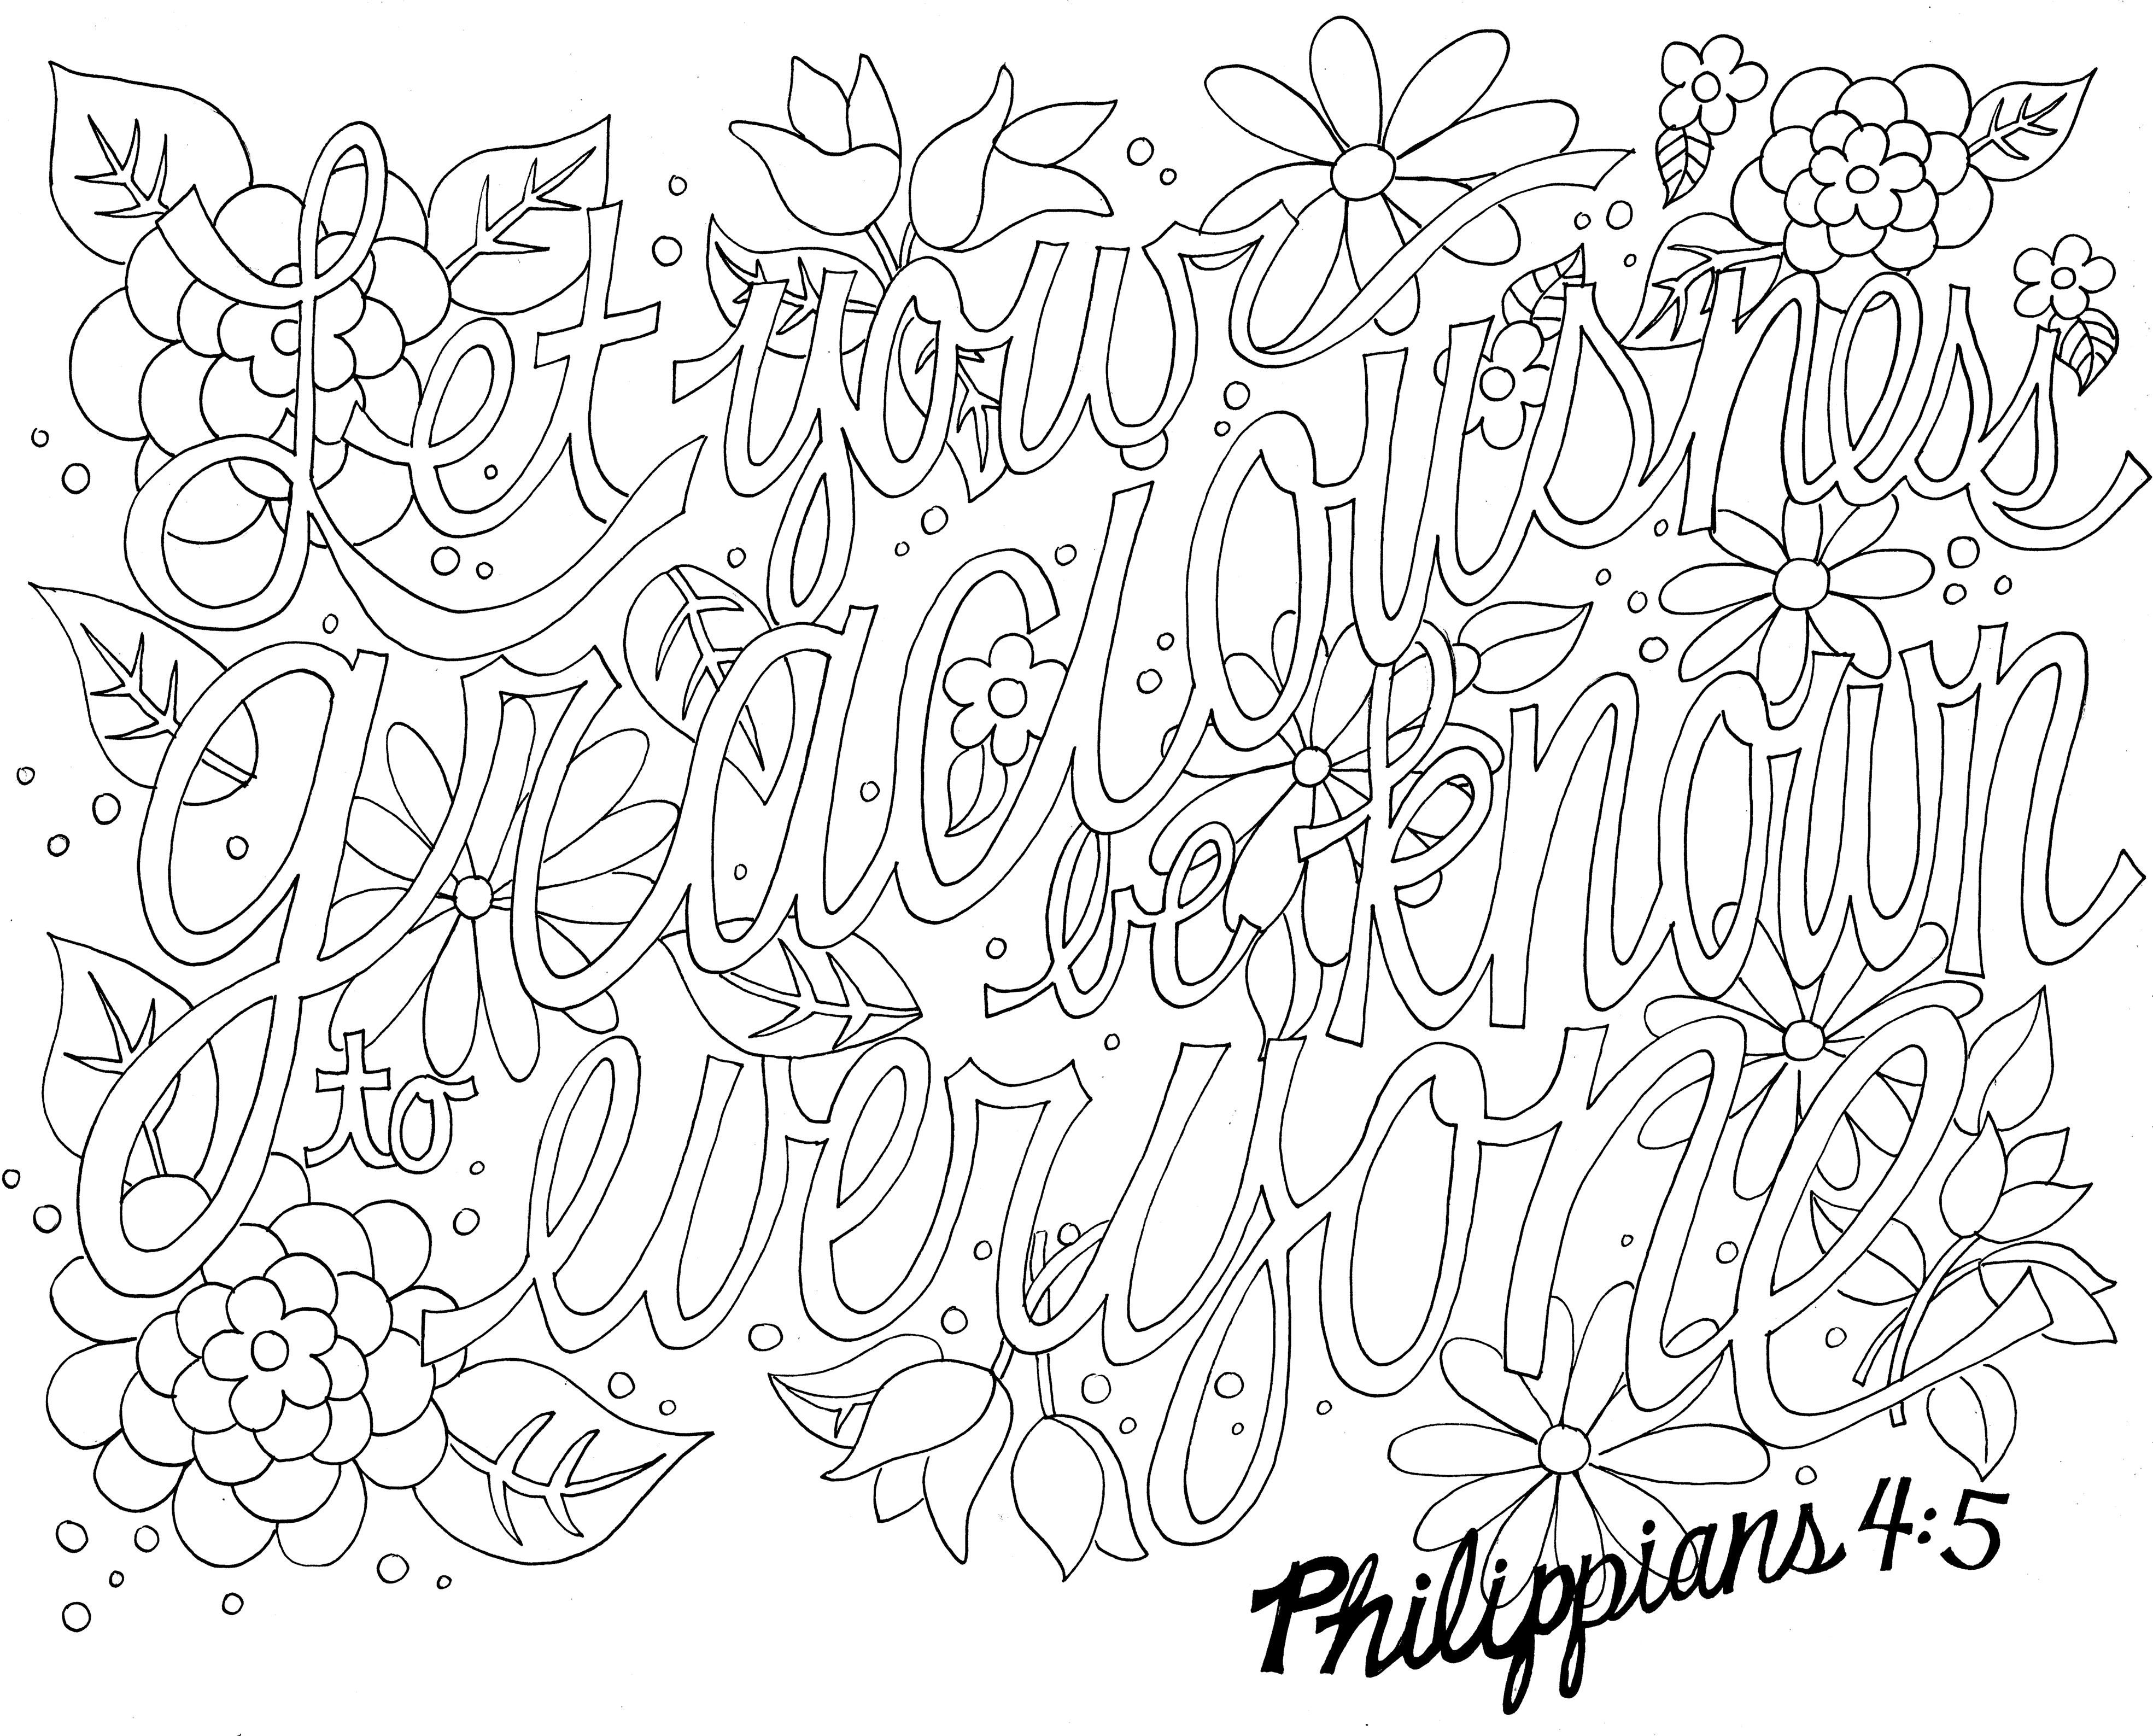 inspirational coloring pages with scripture - Google zoeken ...